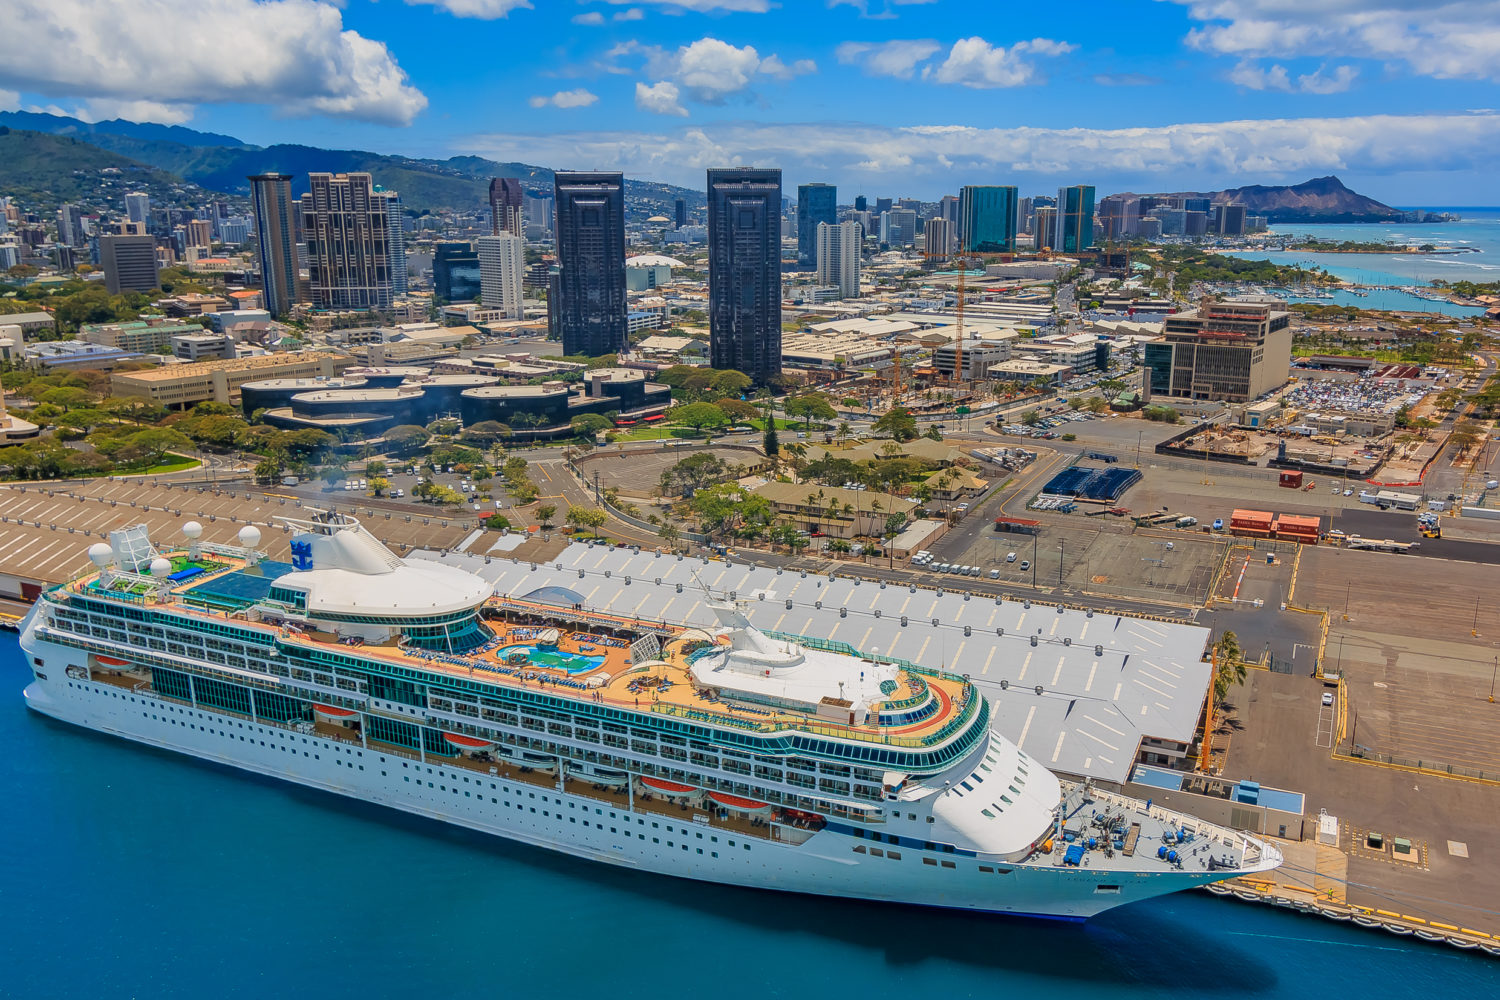 best hawaii cruise deals 2019 Best Hawaii